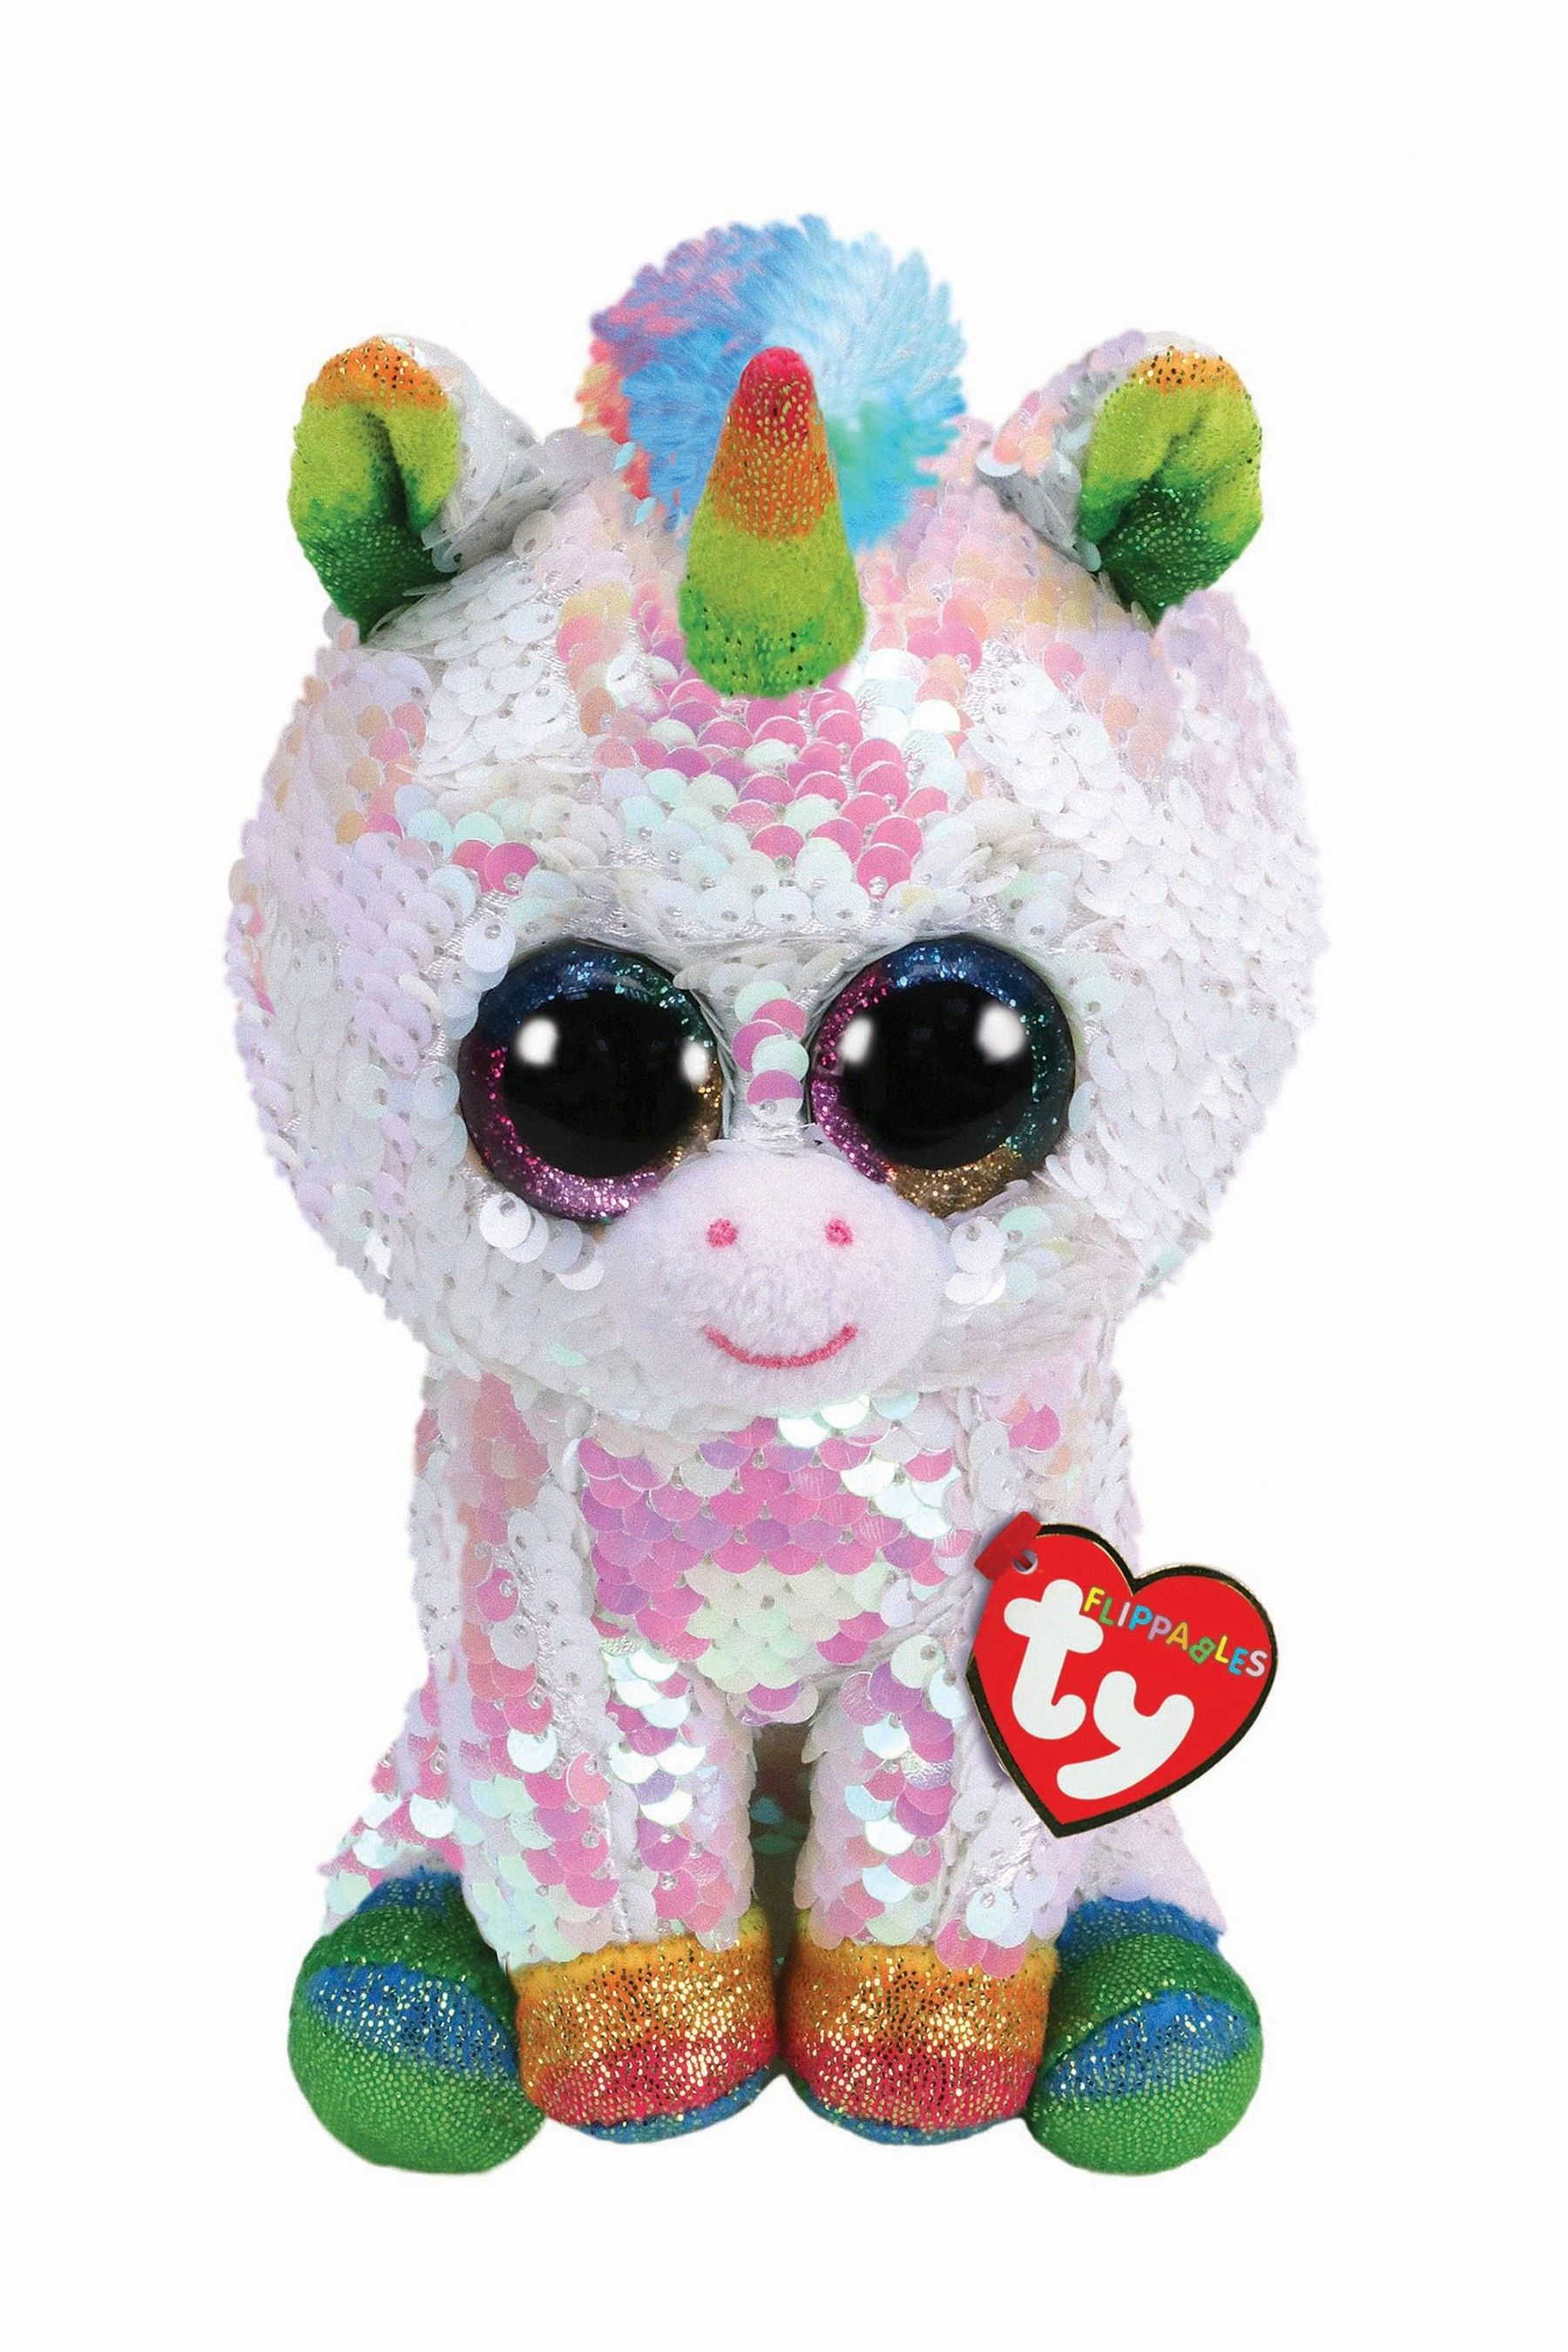 85a6d1c03 Girls Ty Pixy Flippable Medium | Products | Pixie, Ty beanie boos ...